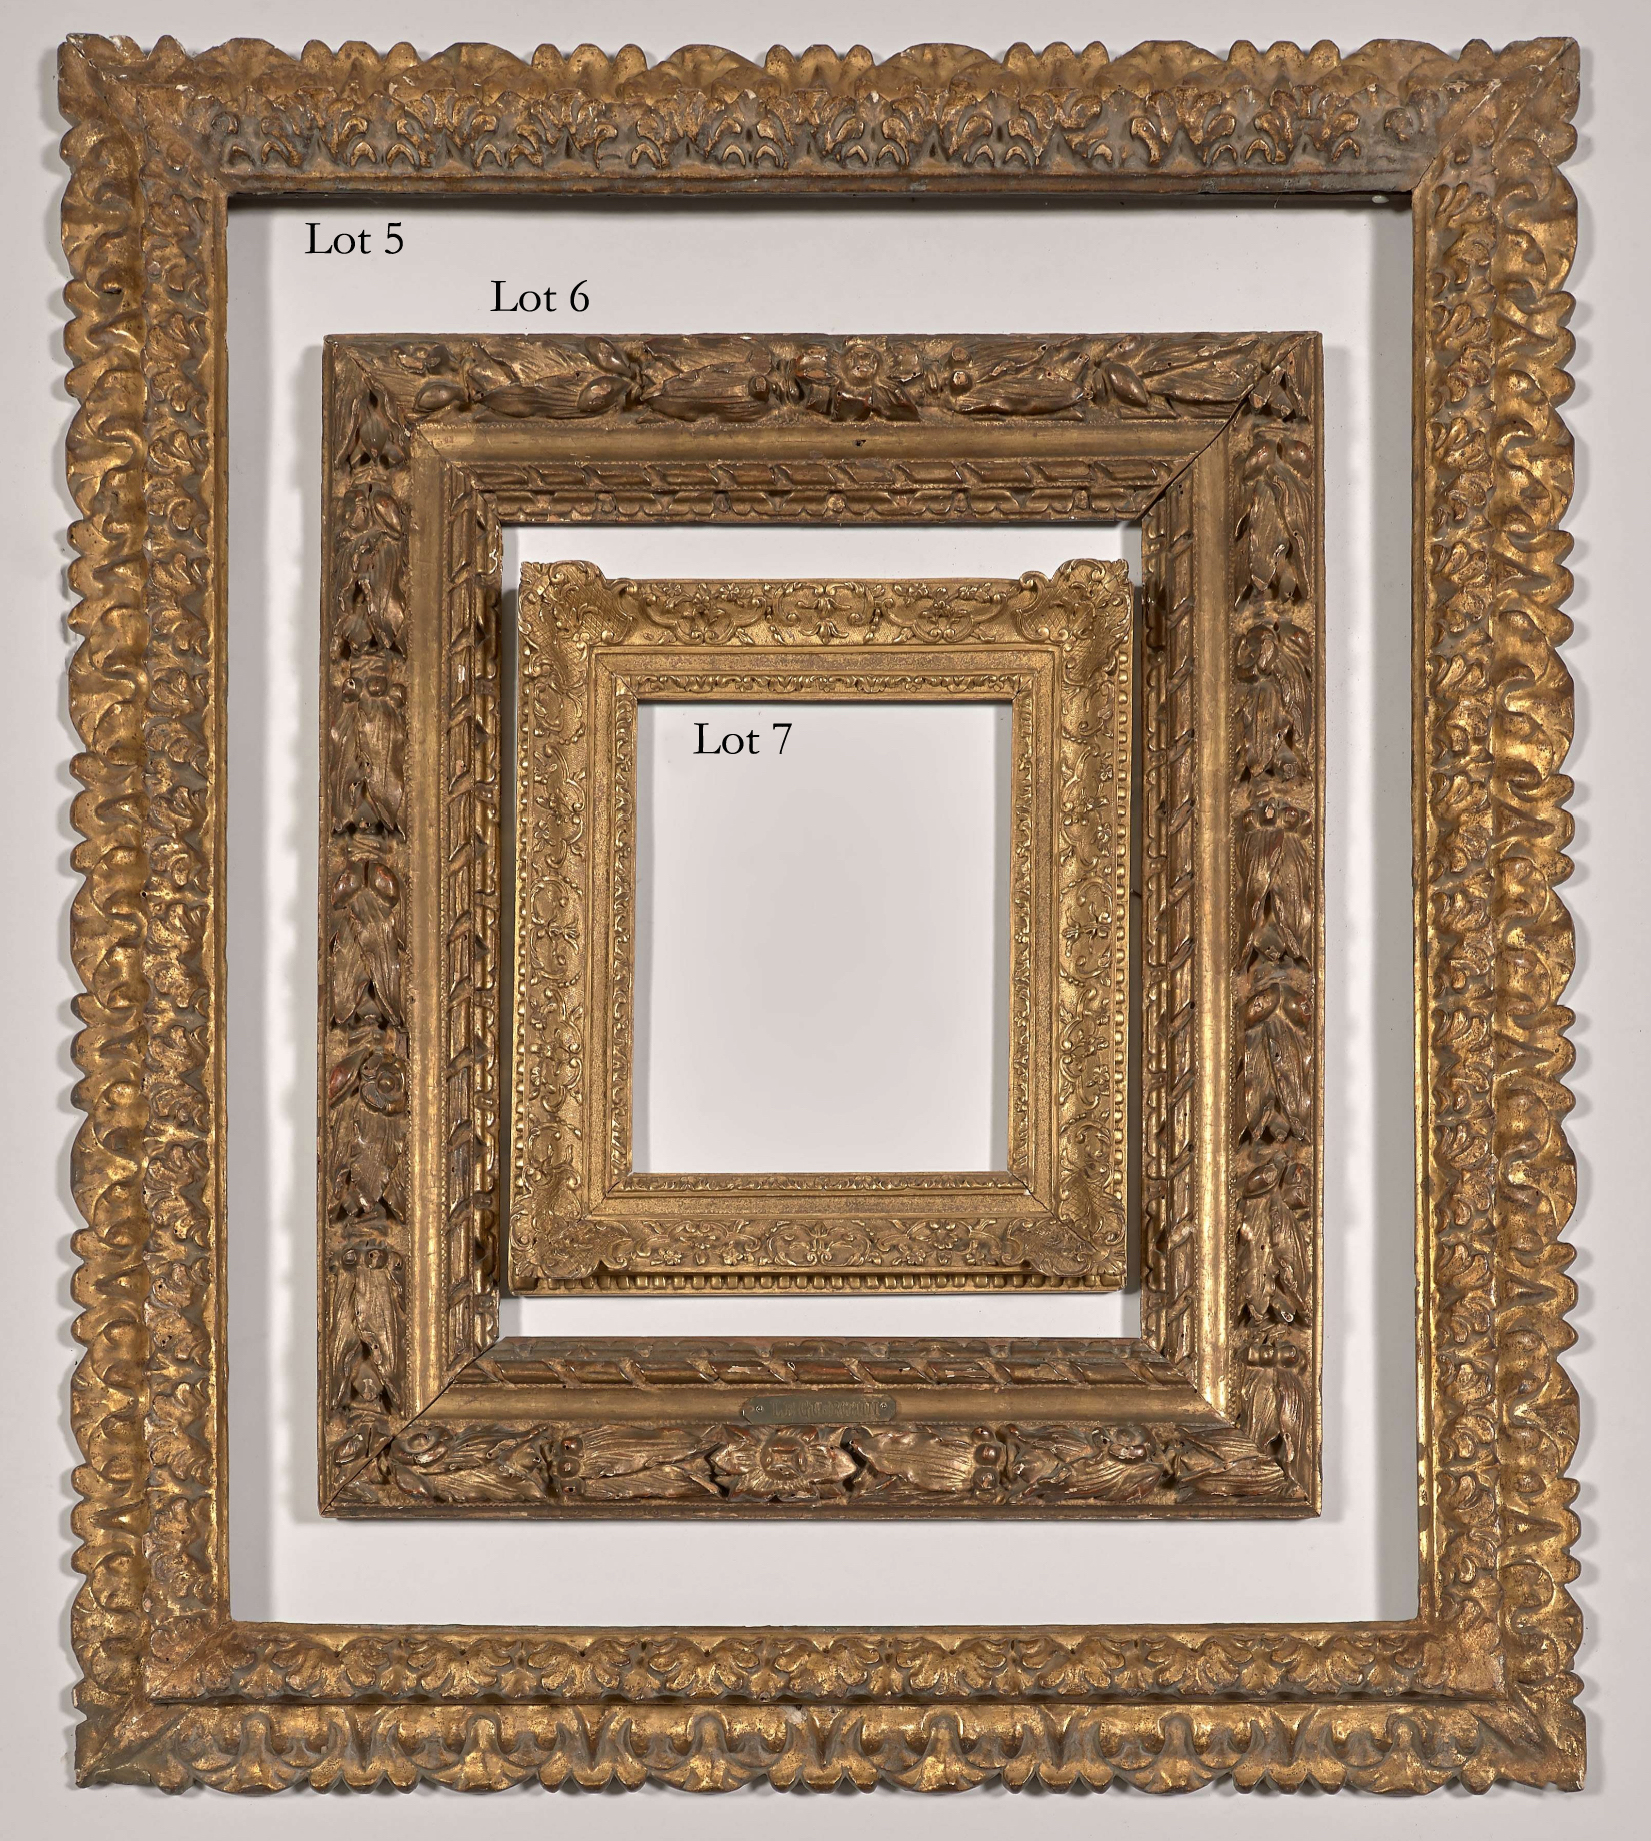 SALES OF ANTIQUE FRAMES | The Frame Blog